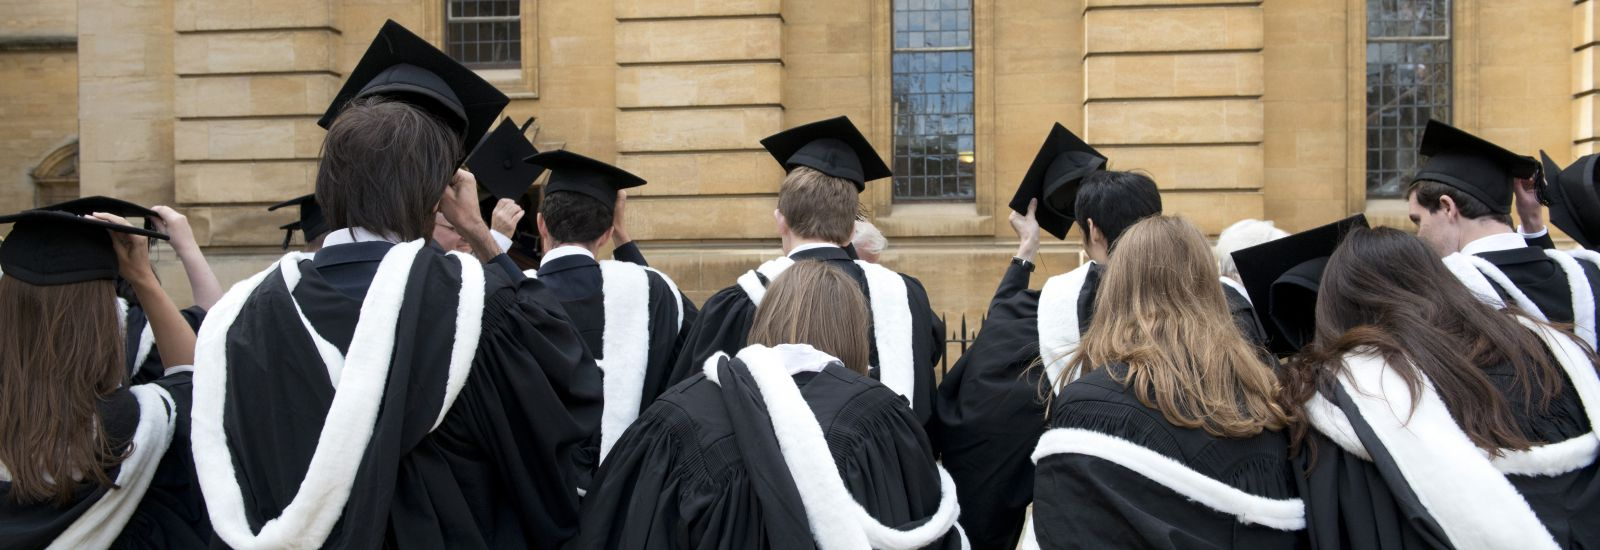 The Oxford Tutorial Oxford Study Abroad Programme